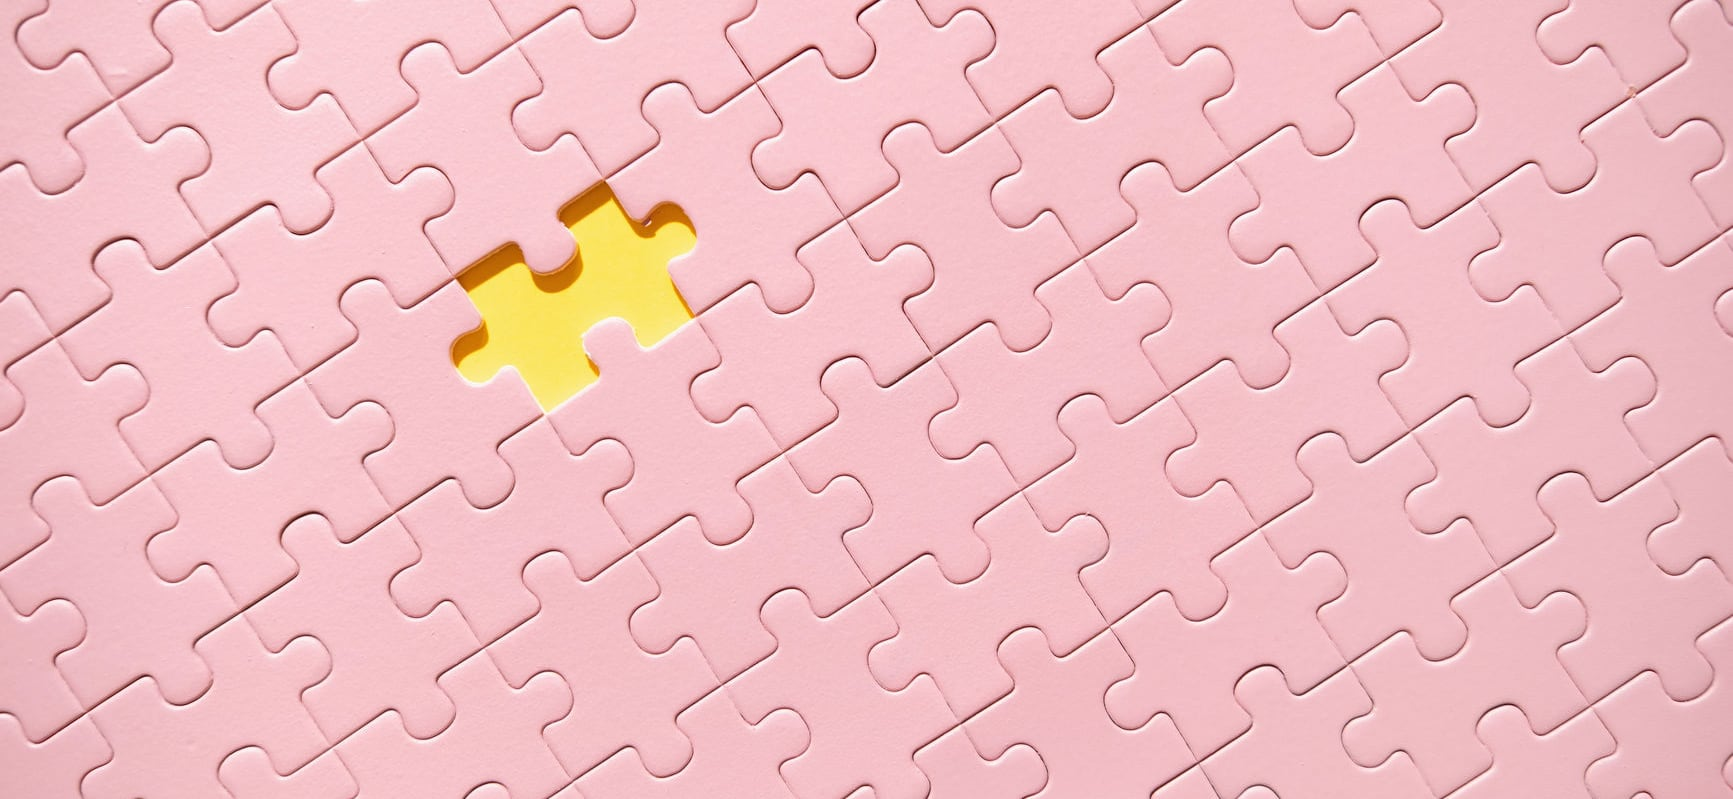 pink puzzle with a missing piece